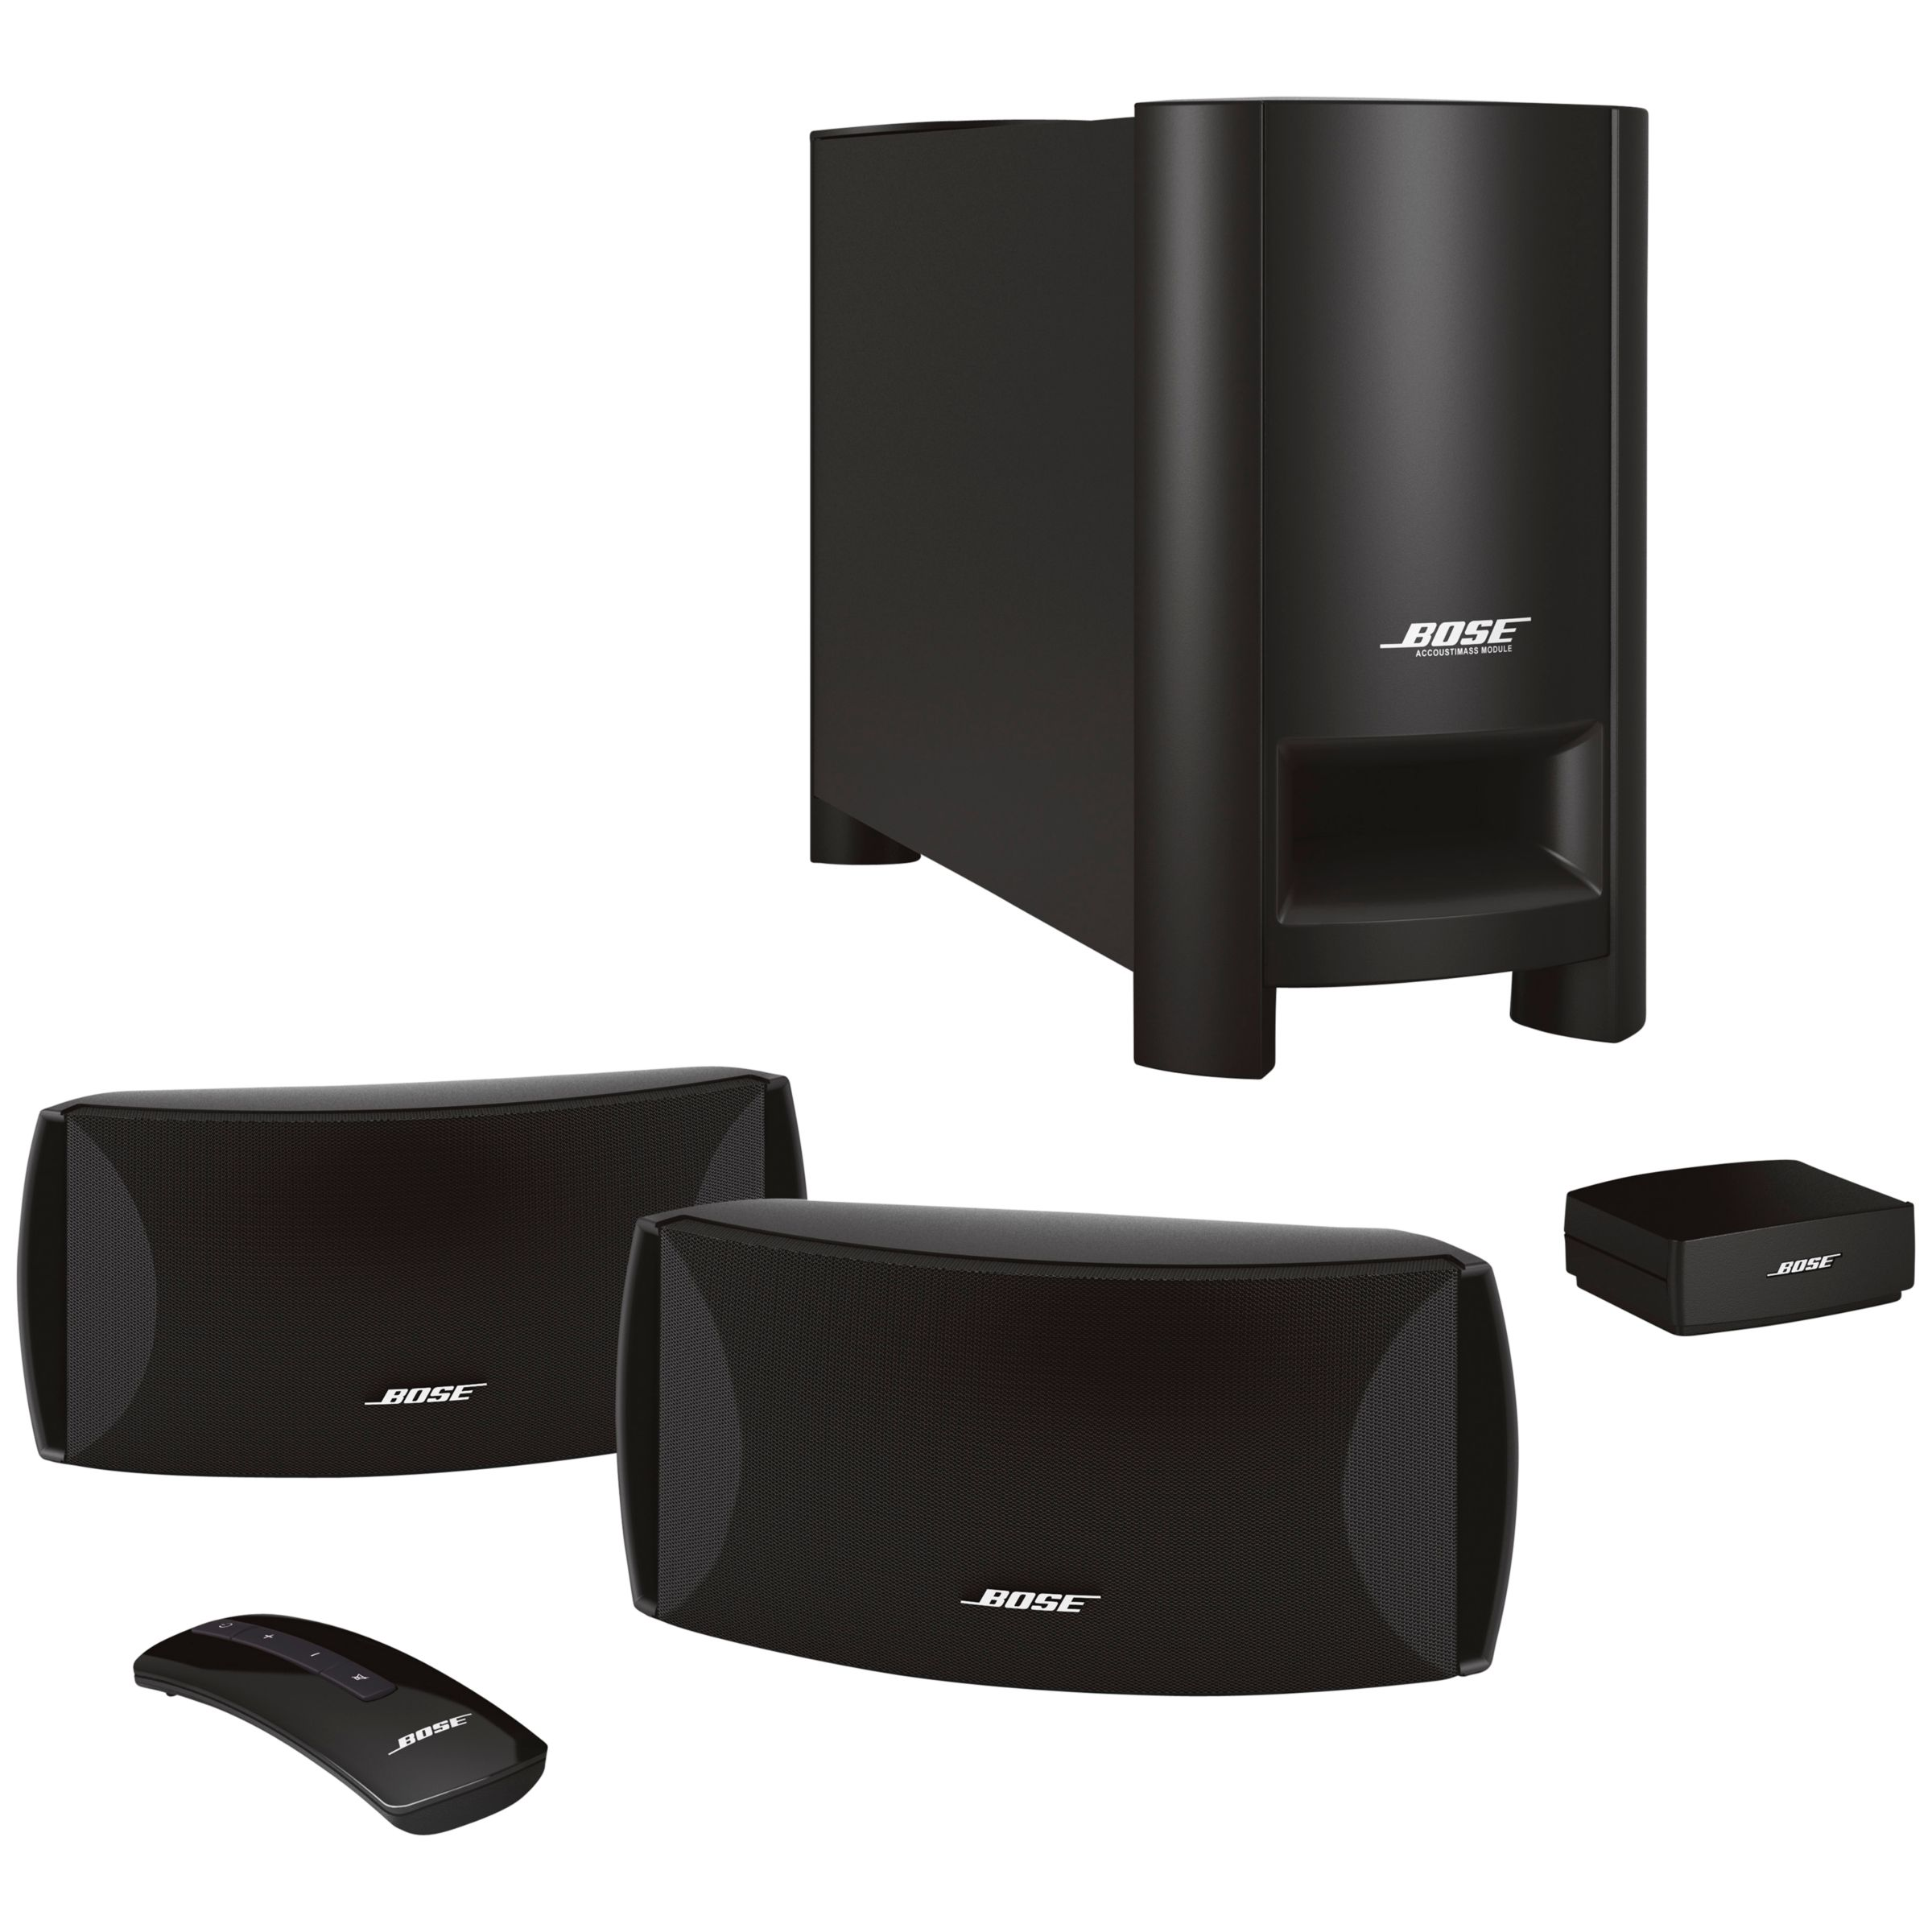 bose wave system 3 price quotation format